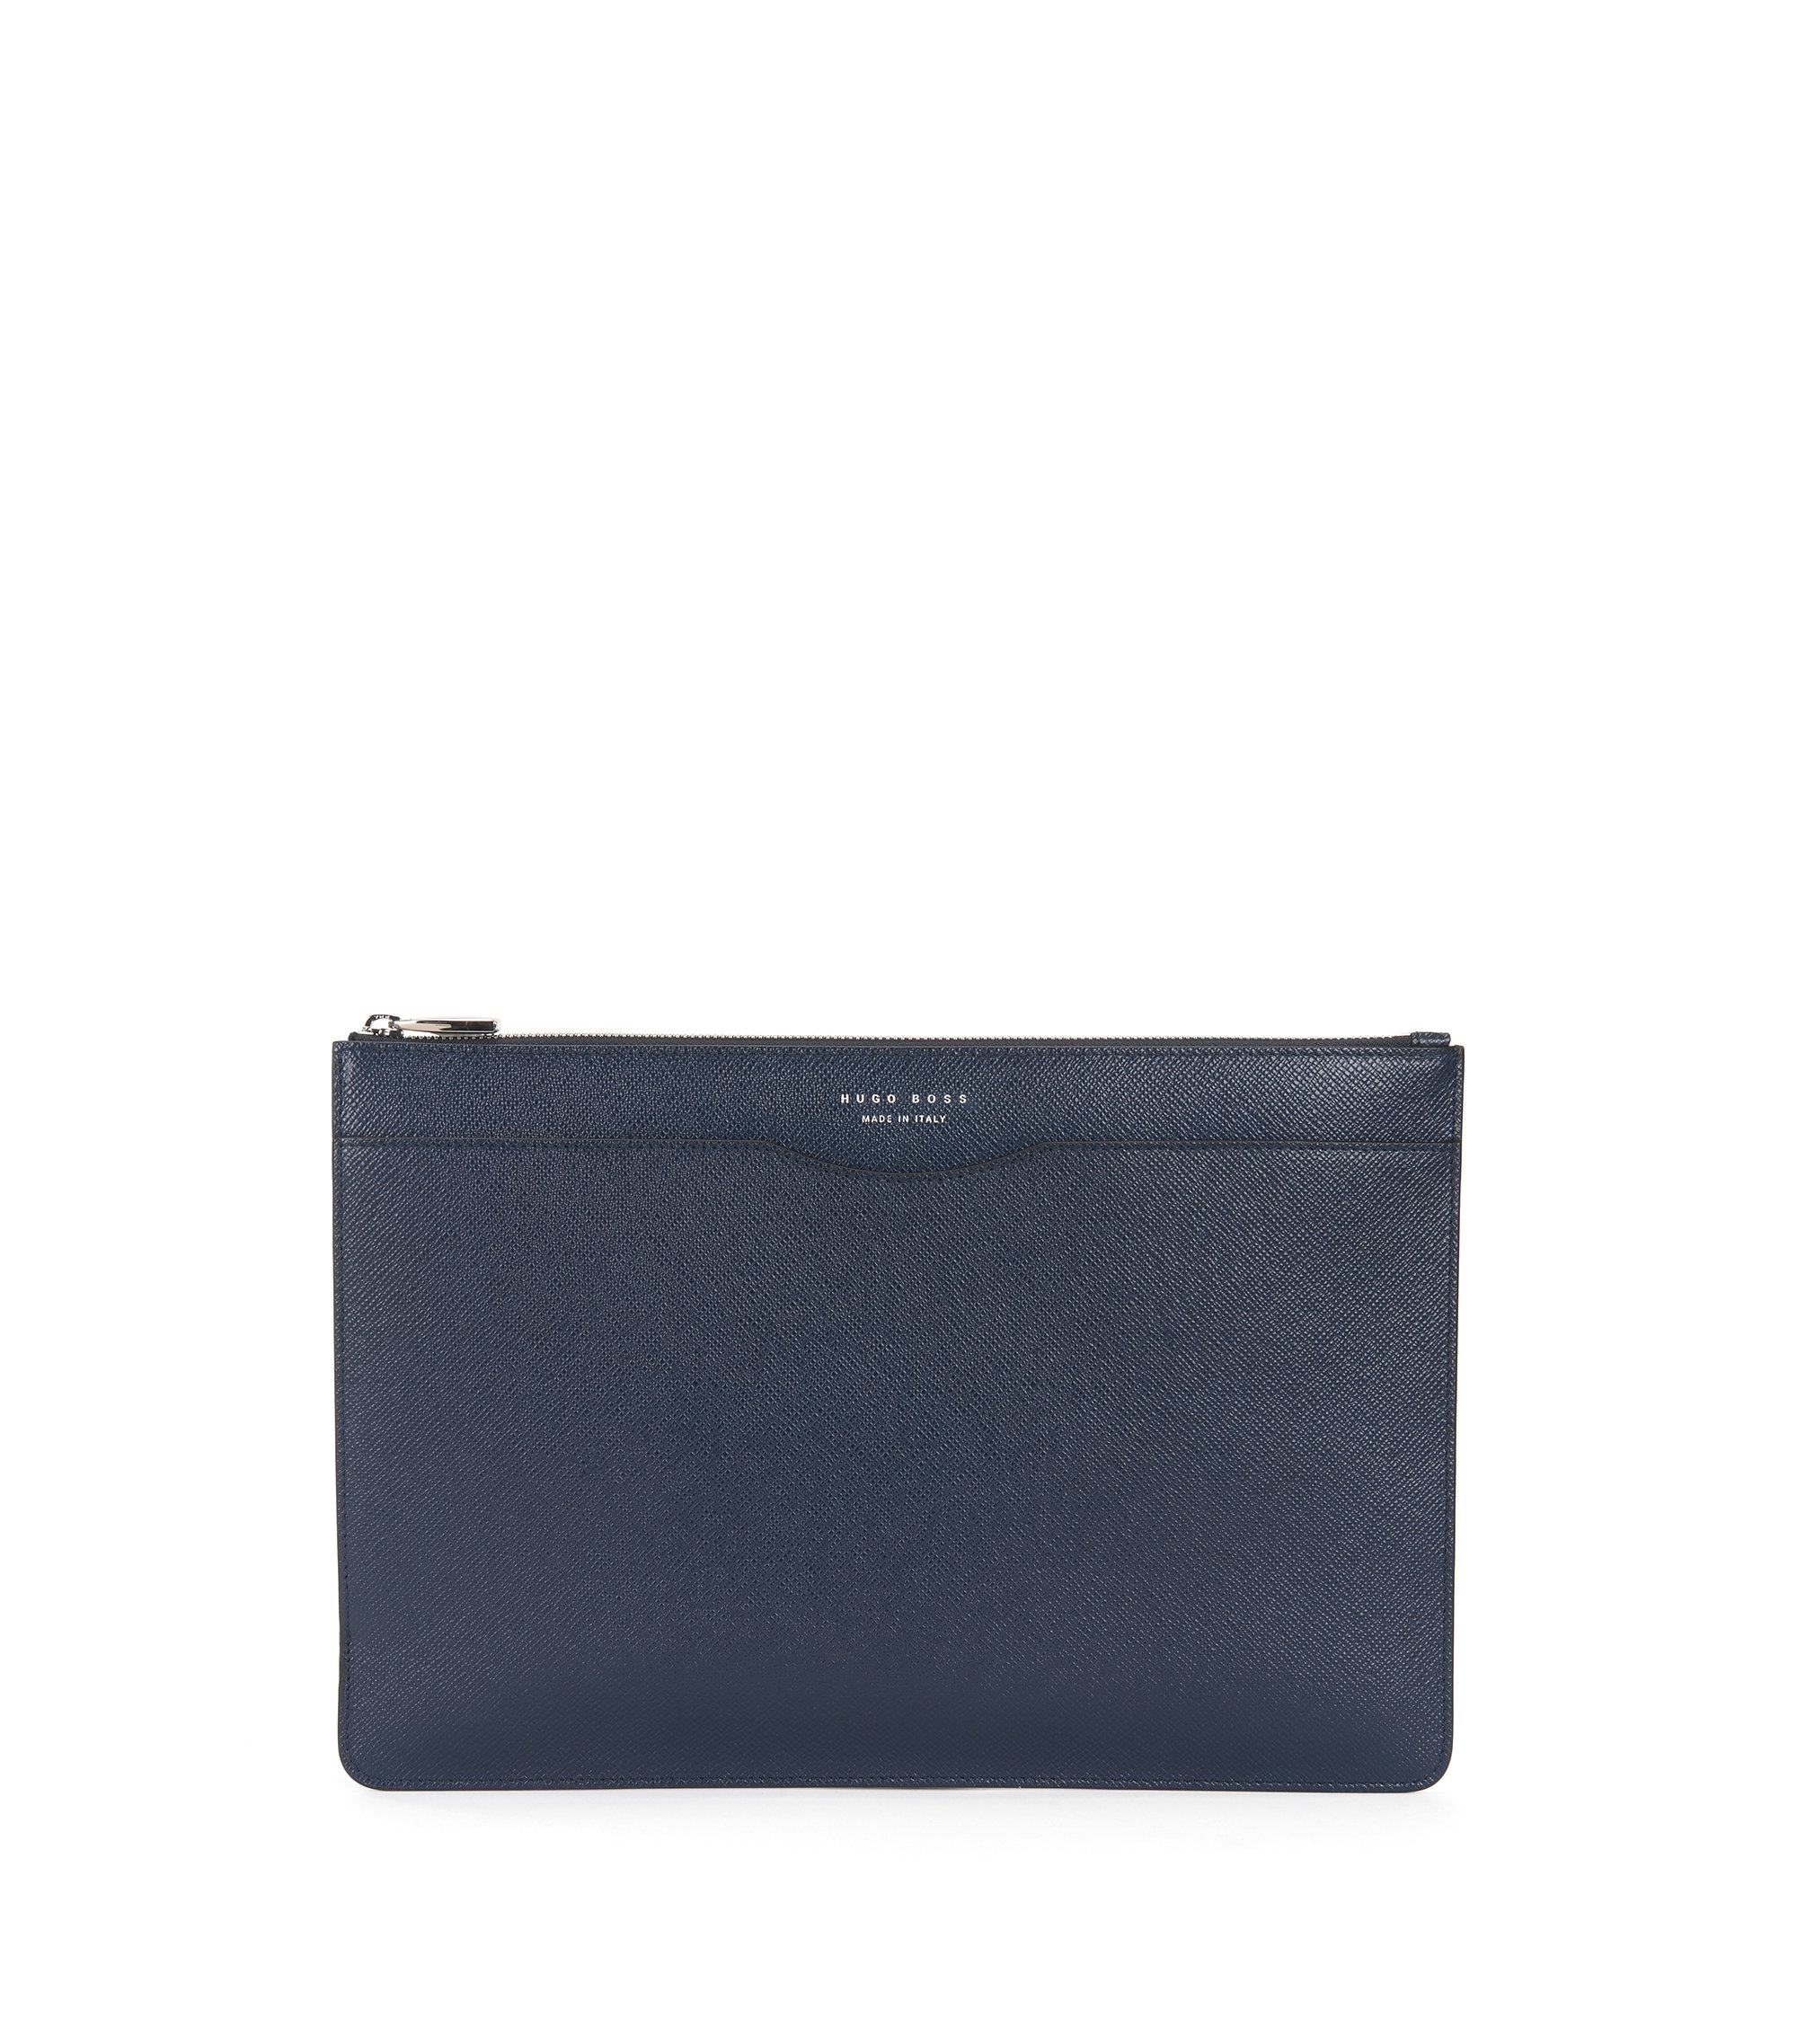 Porte-document Signature Collection en cuir palmellato, Bleu foncé